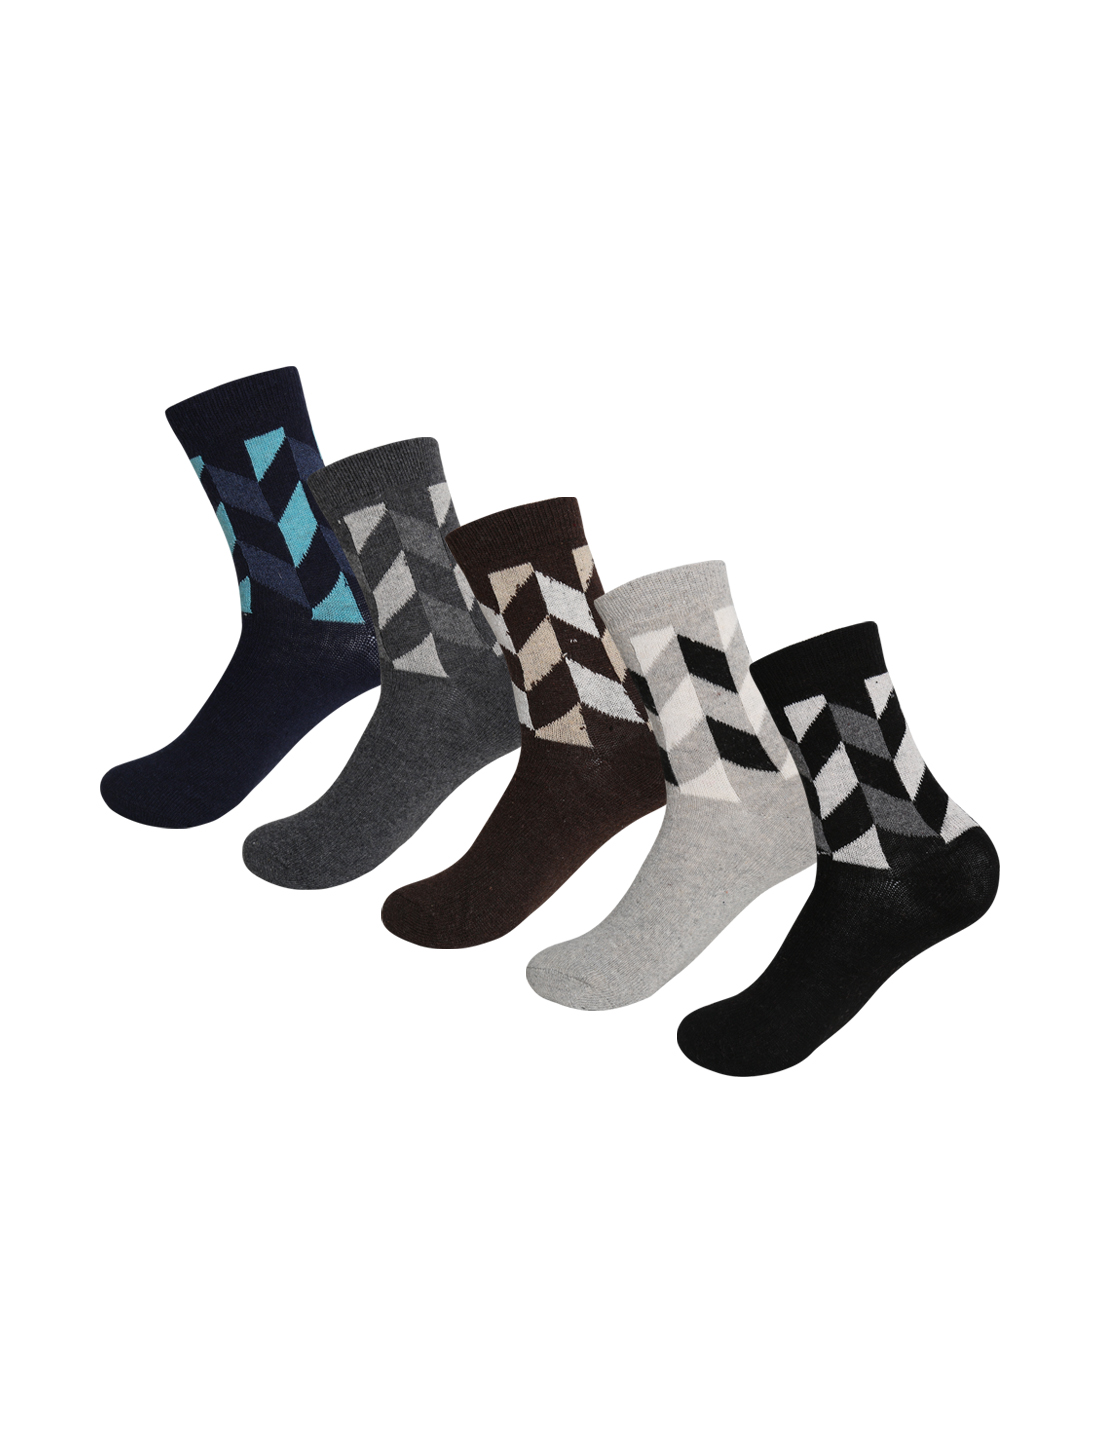 Men Argyle Prints Thermal Wool Crew Socks 10-12 5 Pack Assorted-Argyle